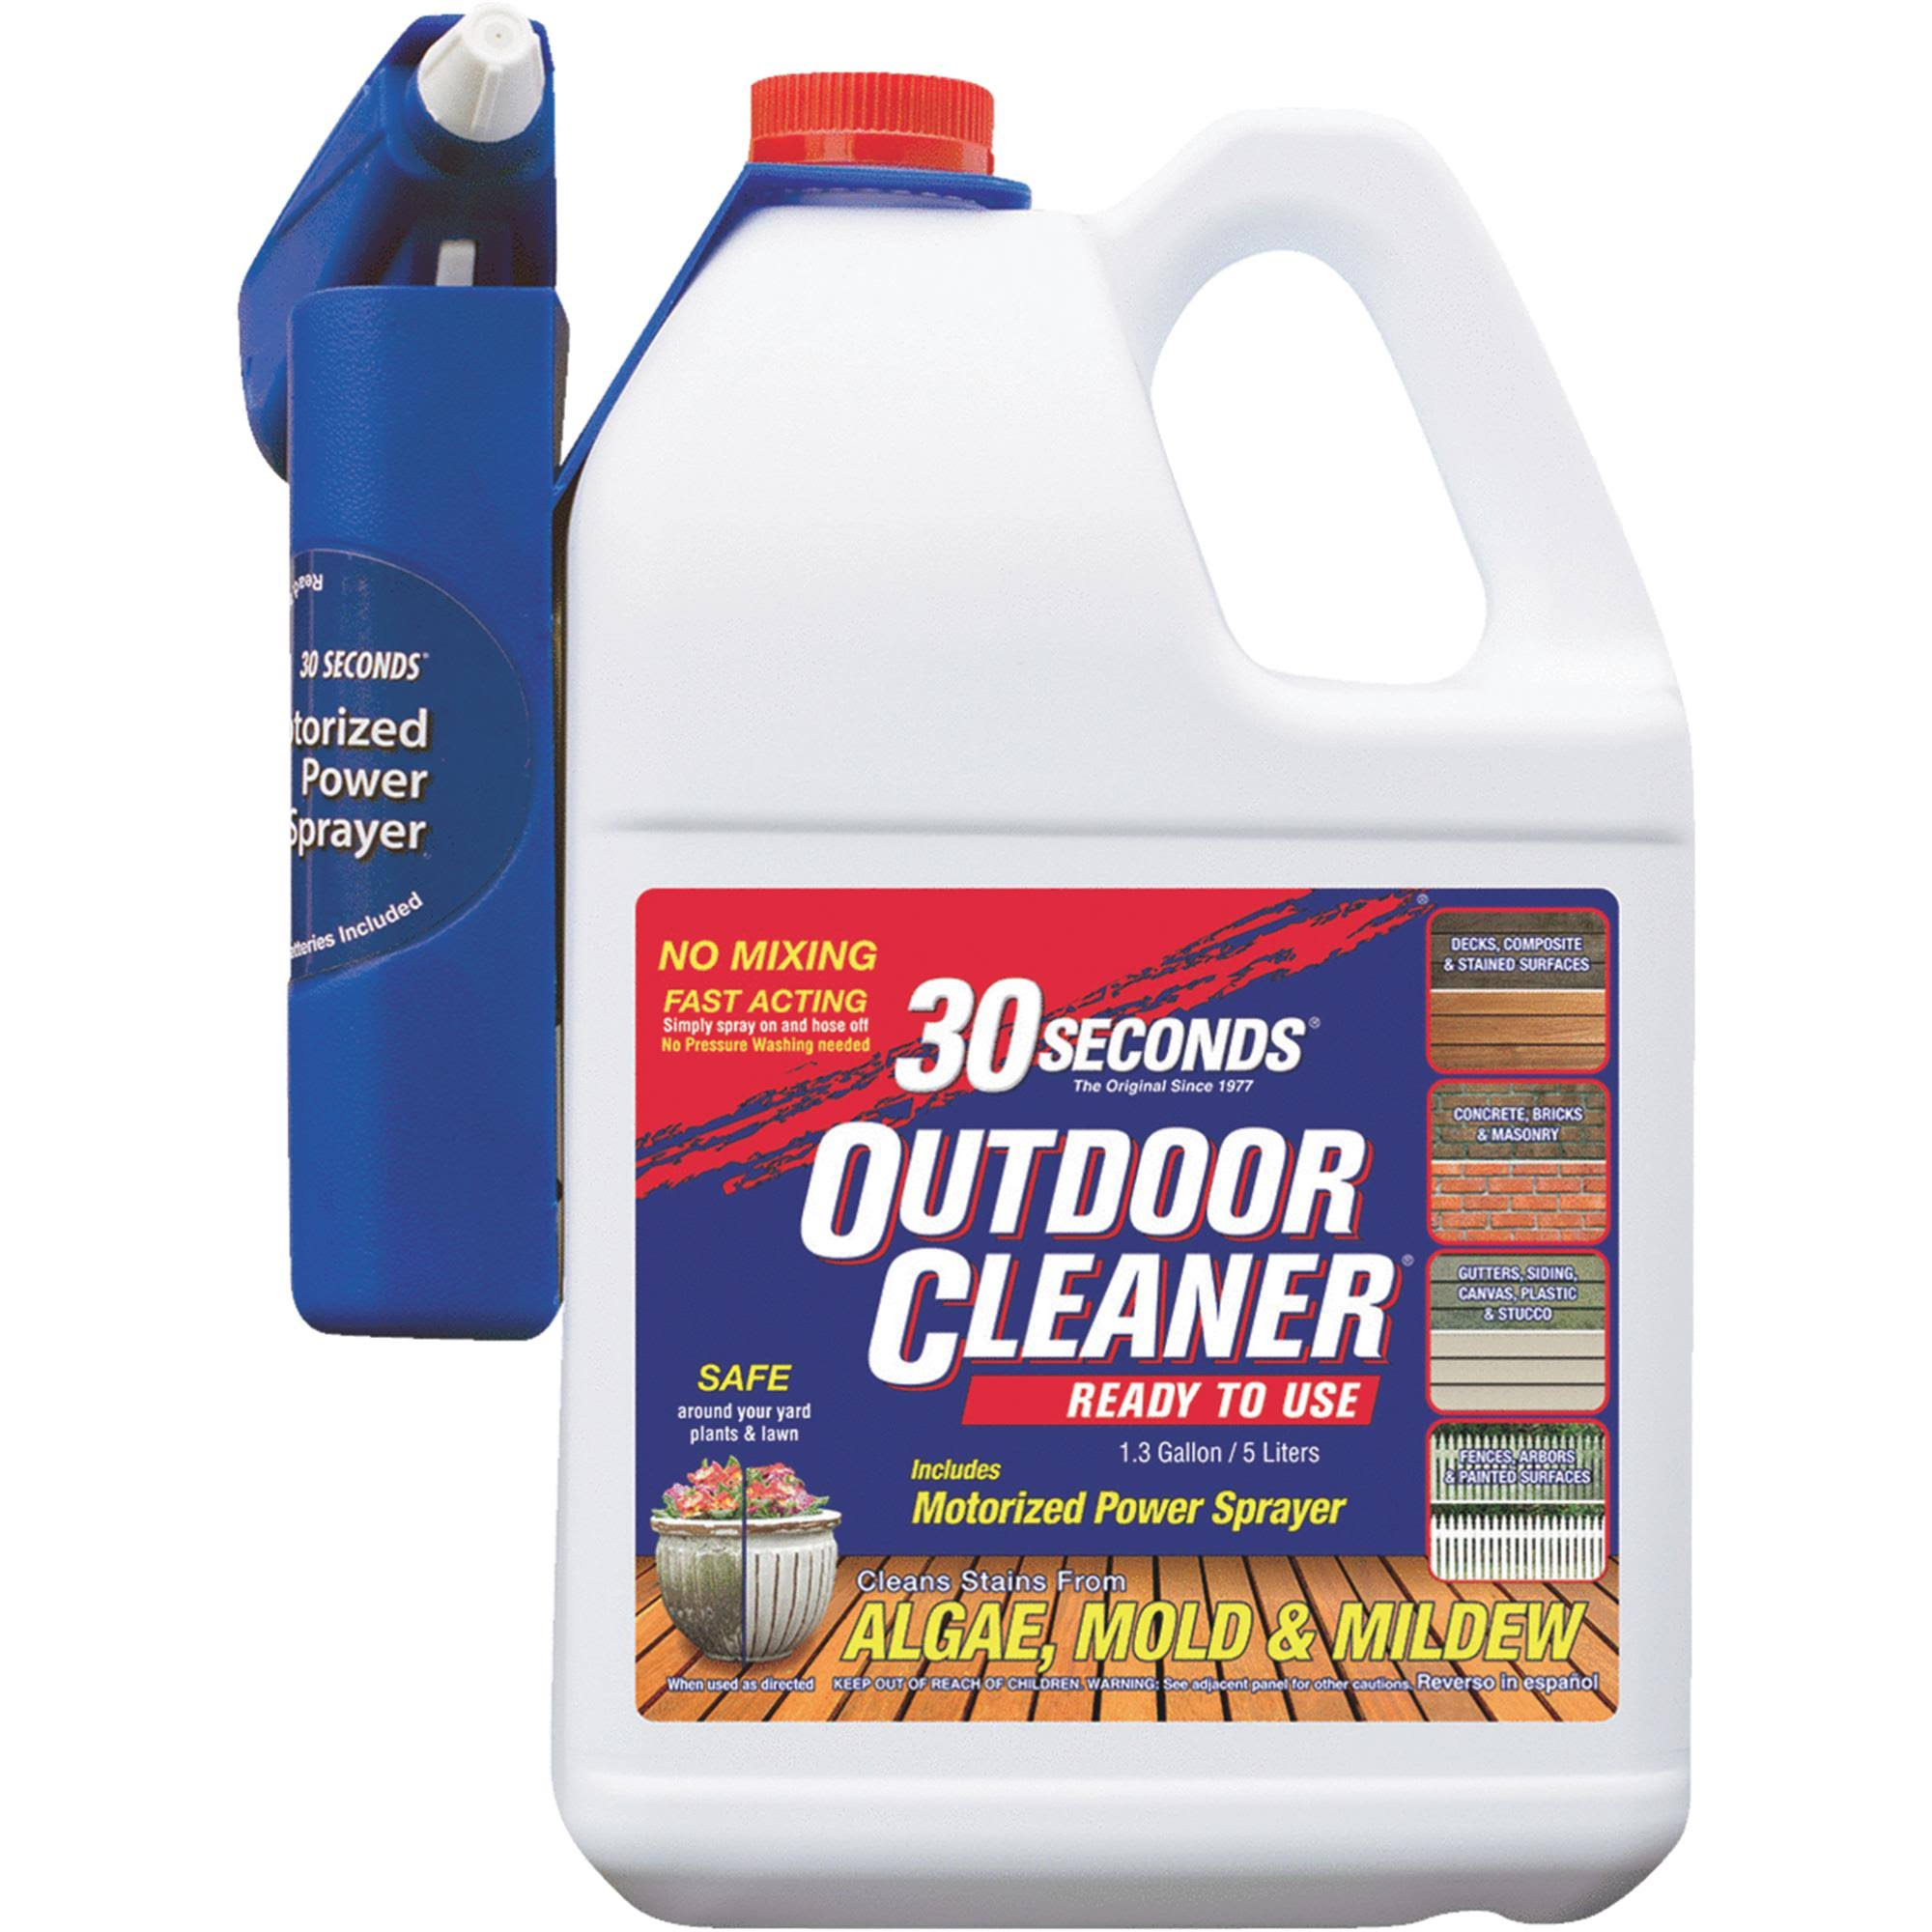 30 Seconds Outdoor Cleaner Algae Mold and Mildew Remover - 1.3gal